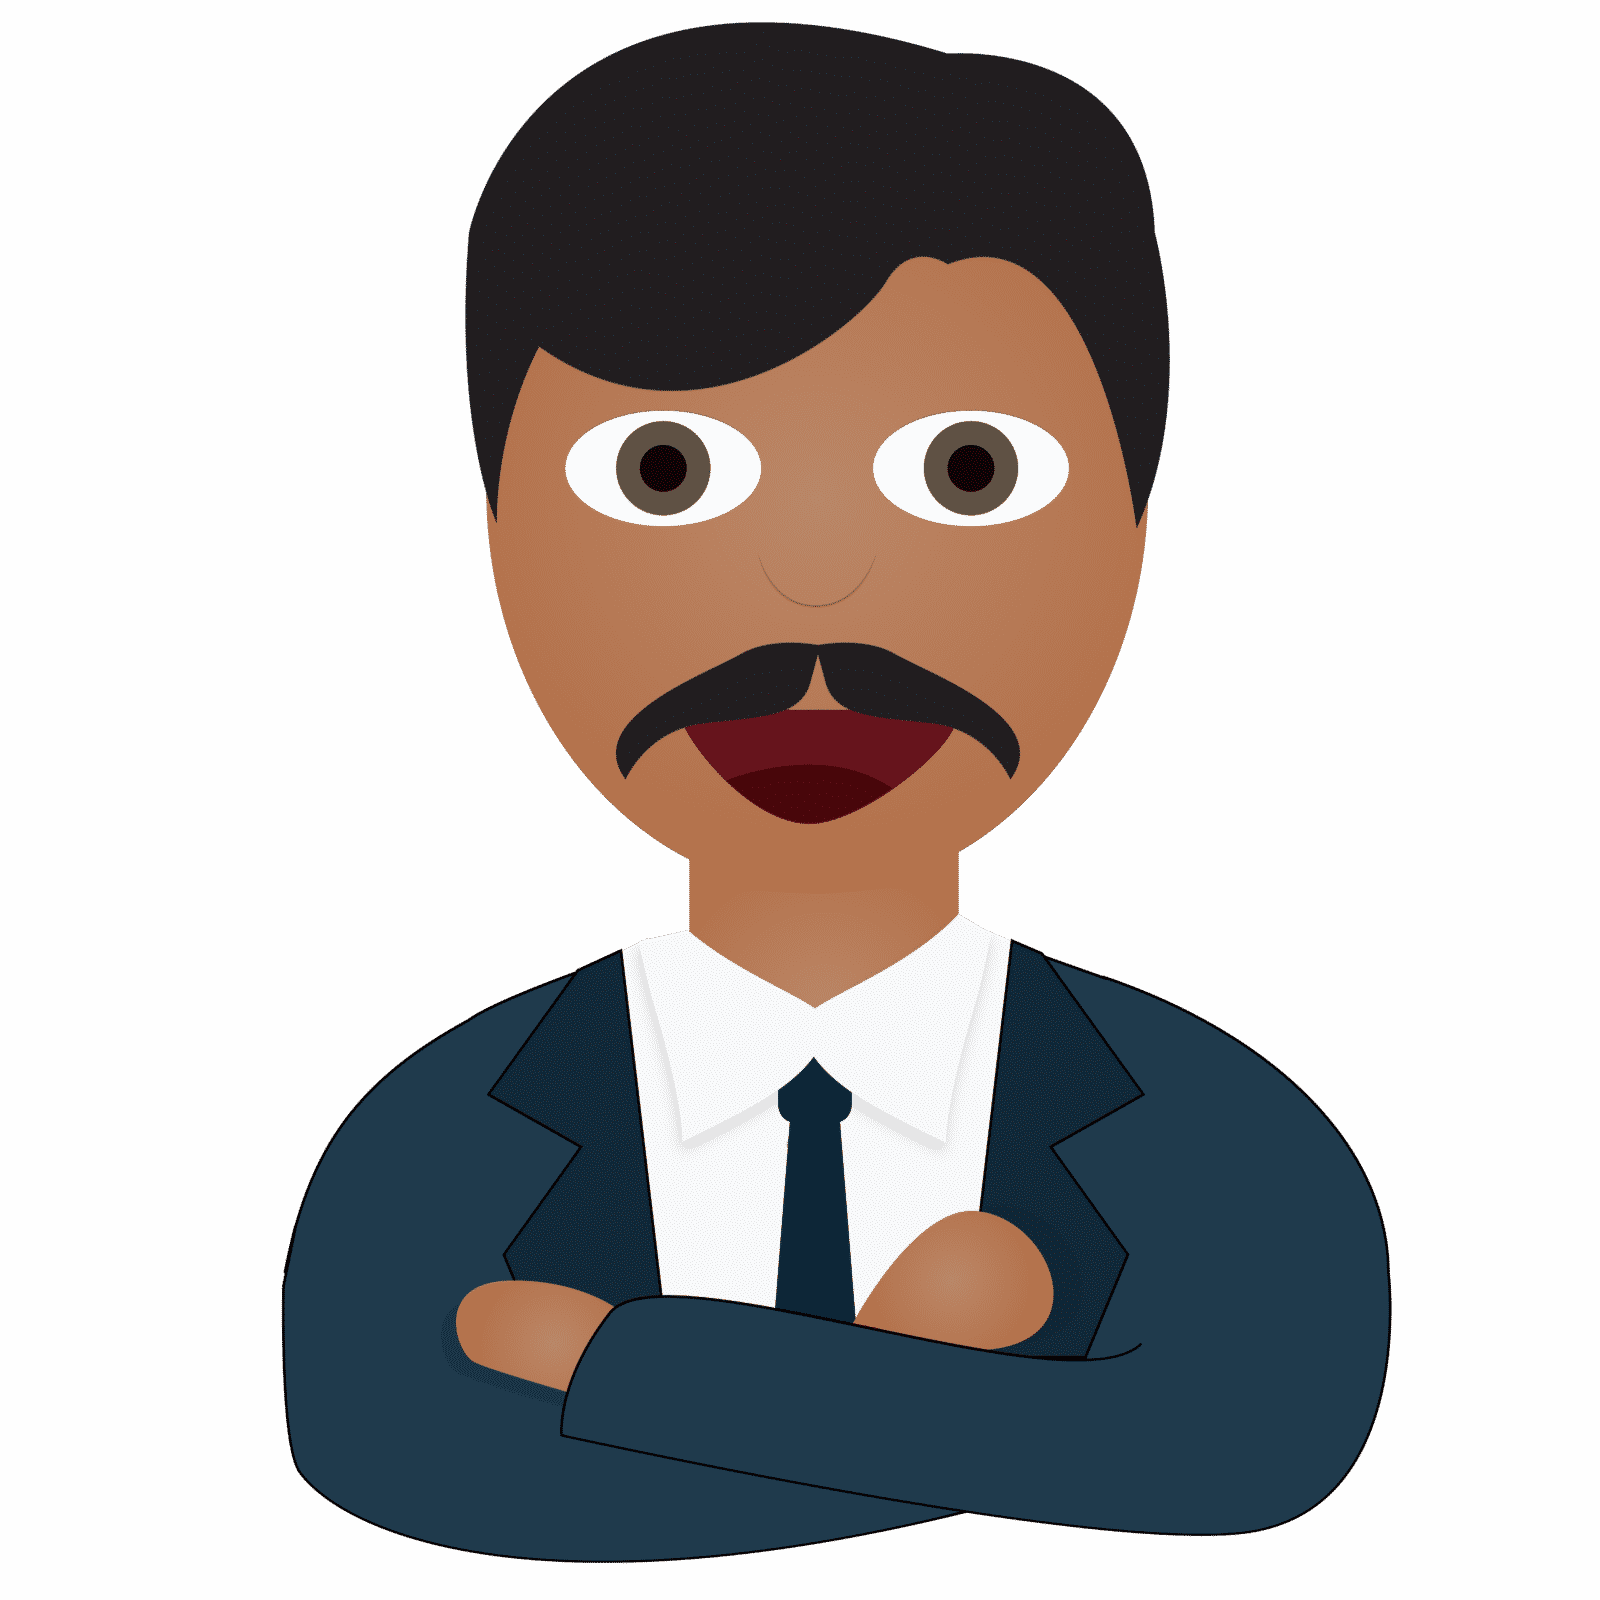 Manager clipart one man. Emoji hospitality leaders general